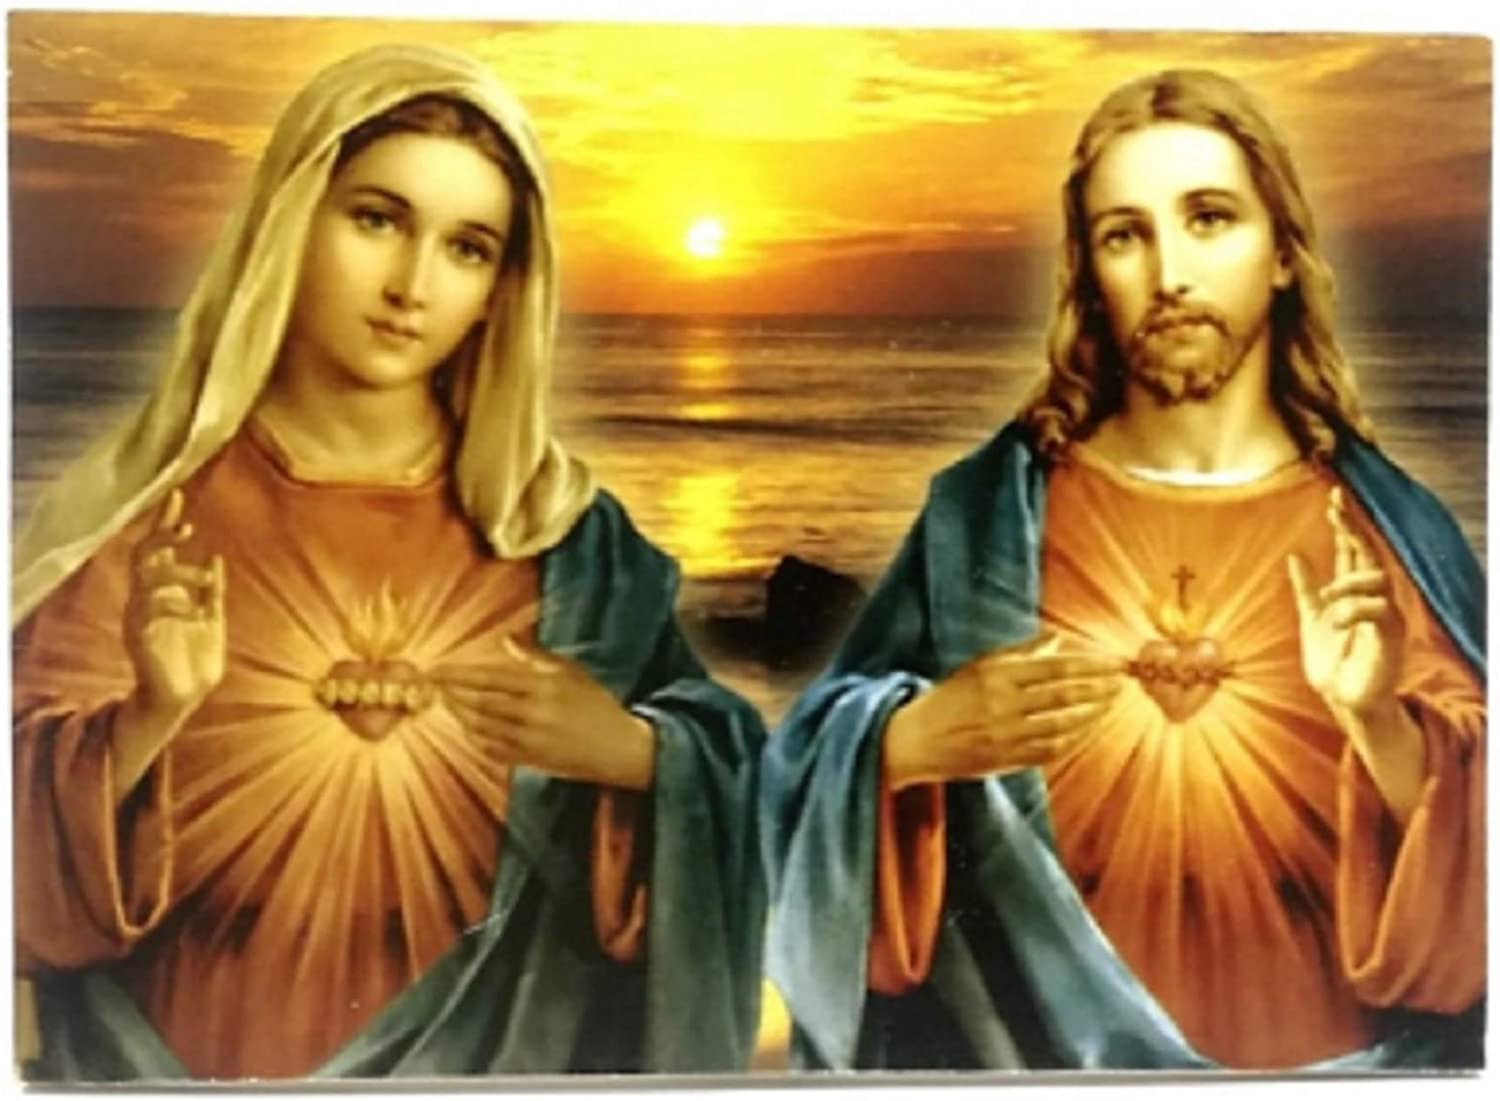 Sacred Heart of Jesus and Mary - Painting Print Picture - Immaculate Heart - Catholic Home Decor